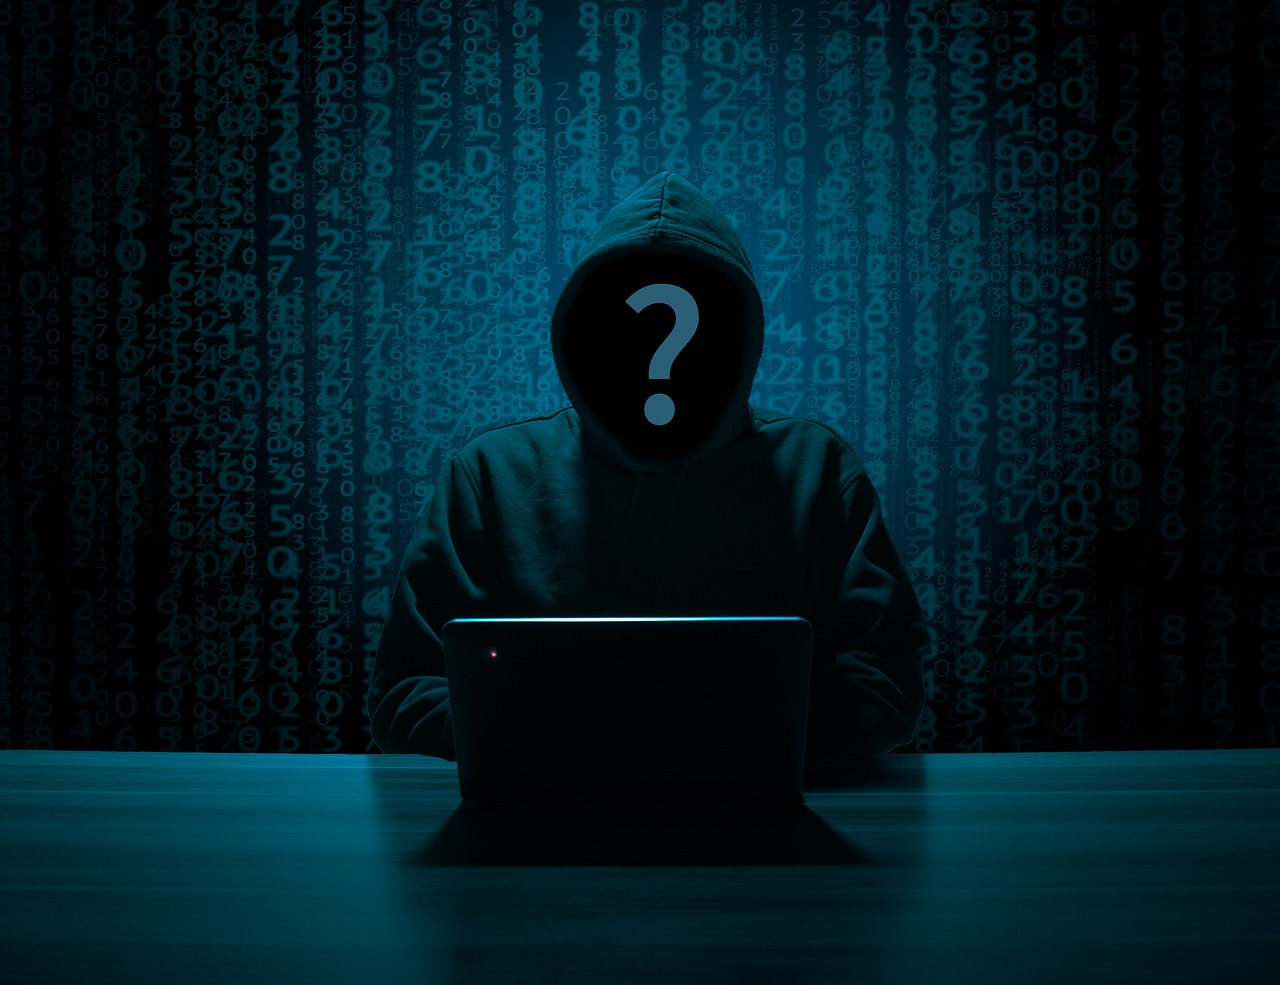 XYZ Fraudulent and Cloned Websites or Domain Names